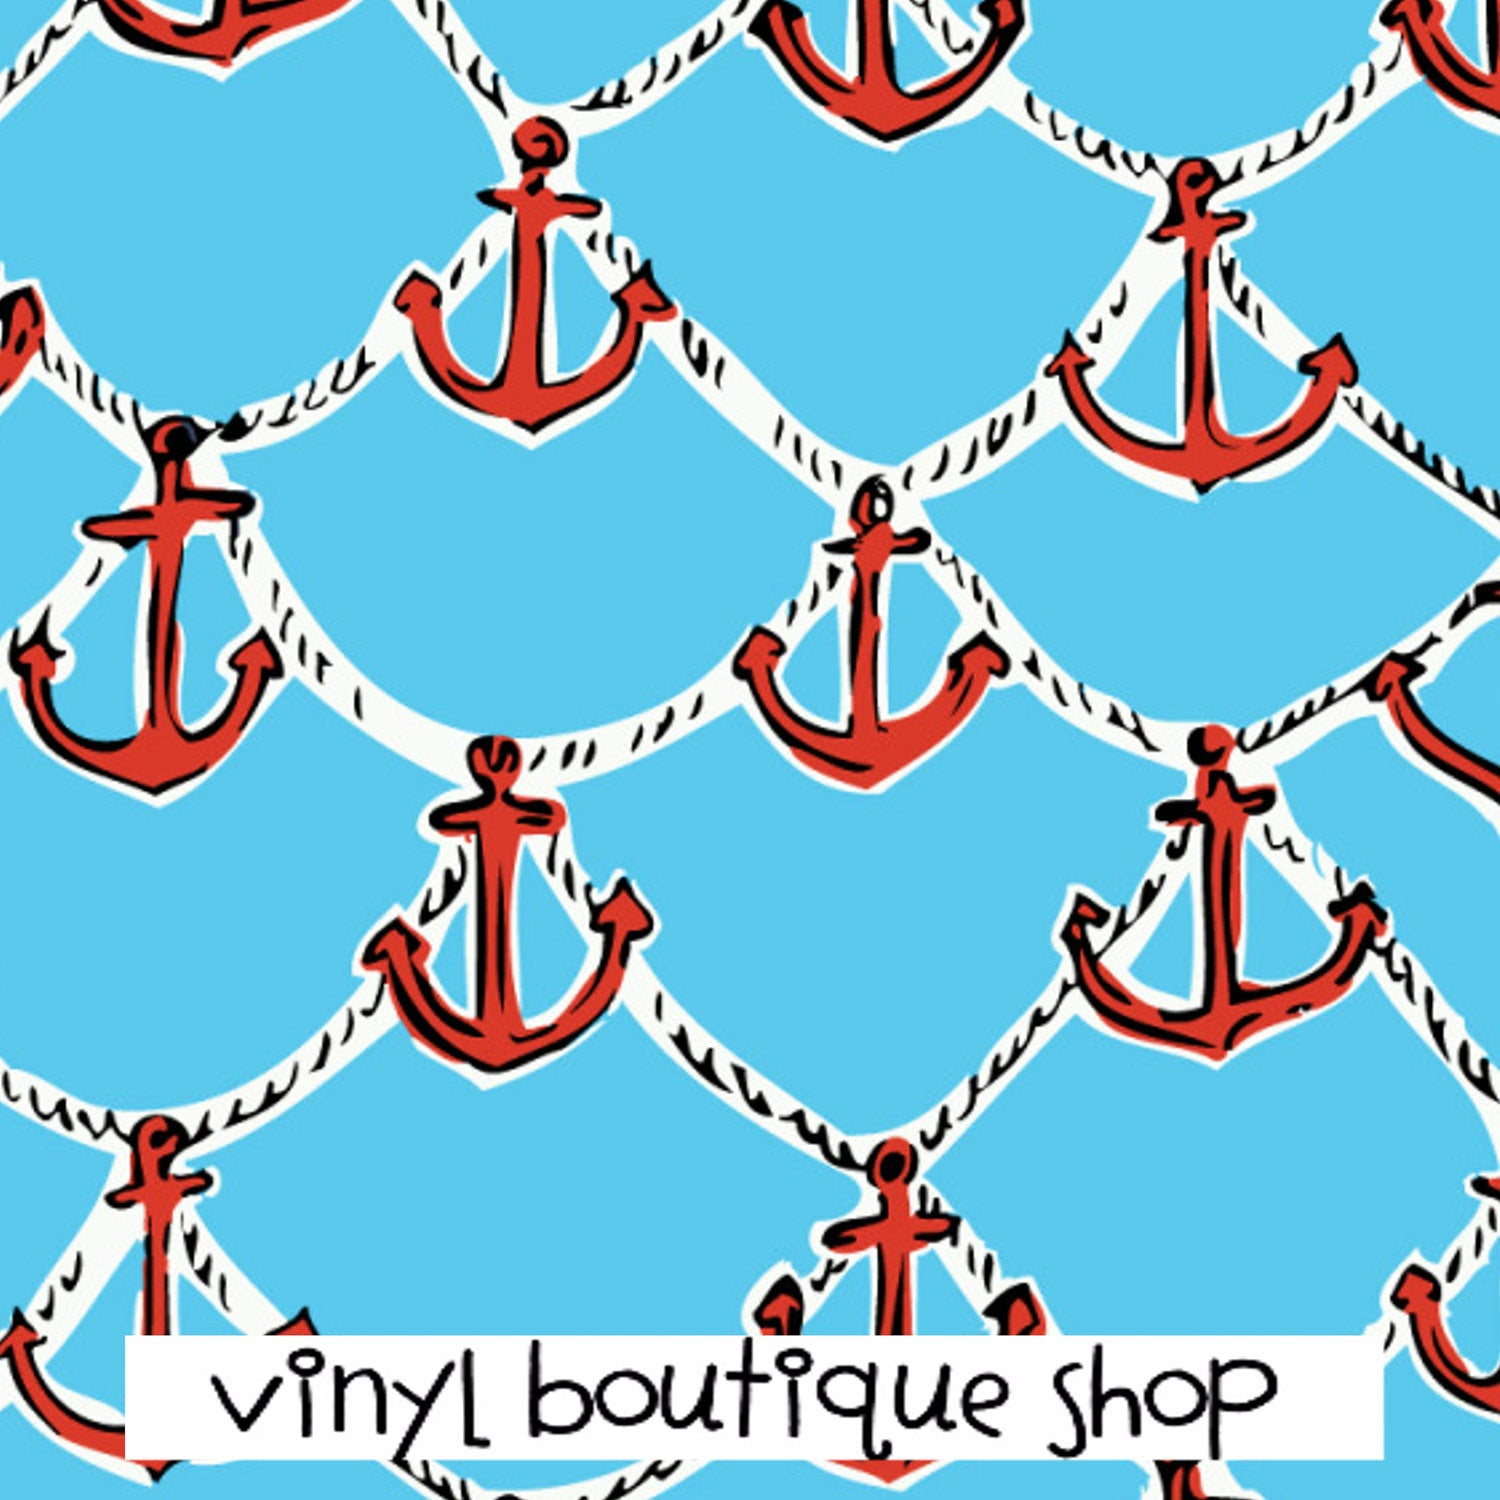 Anchor Patterns Lilly Inspired Printed Patterned Craft Vinyl - Vinyl Boutique Shop